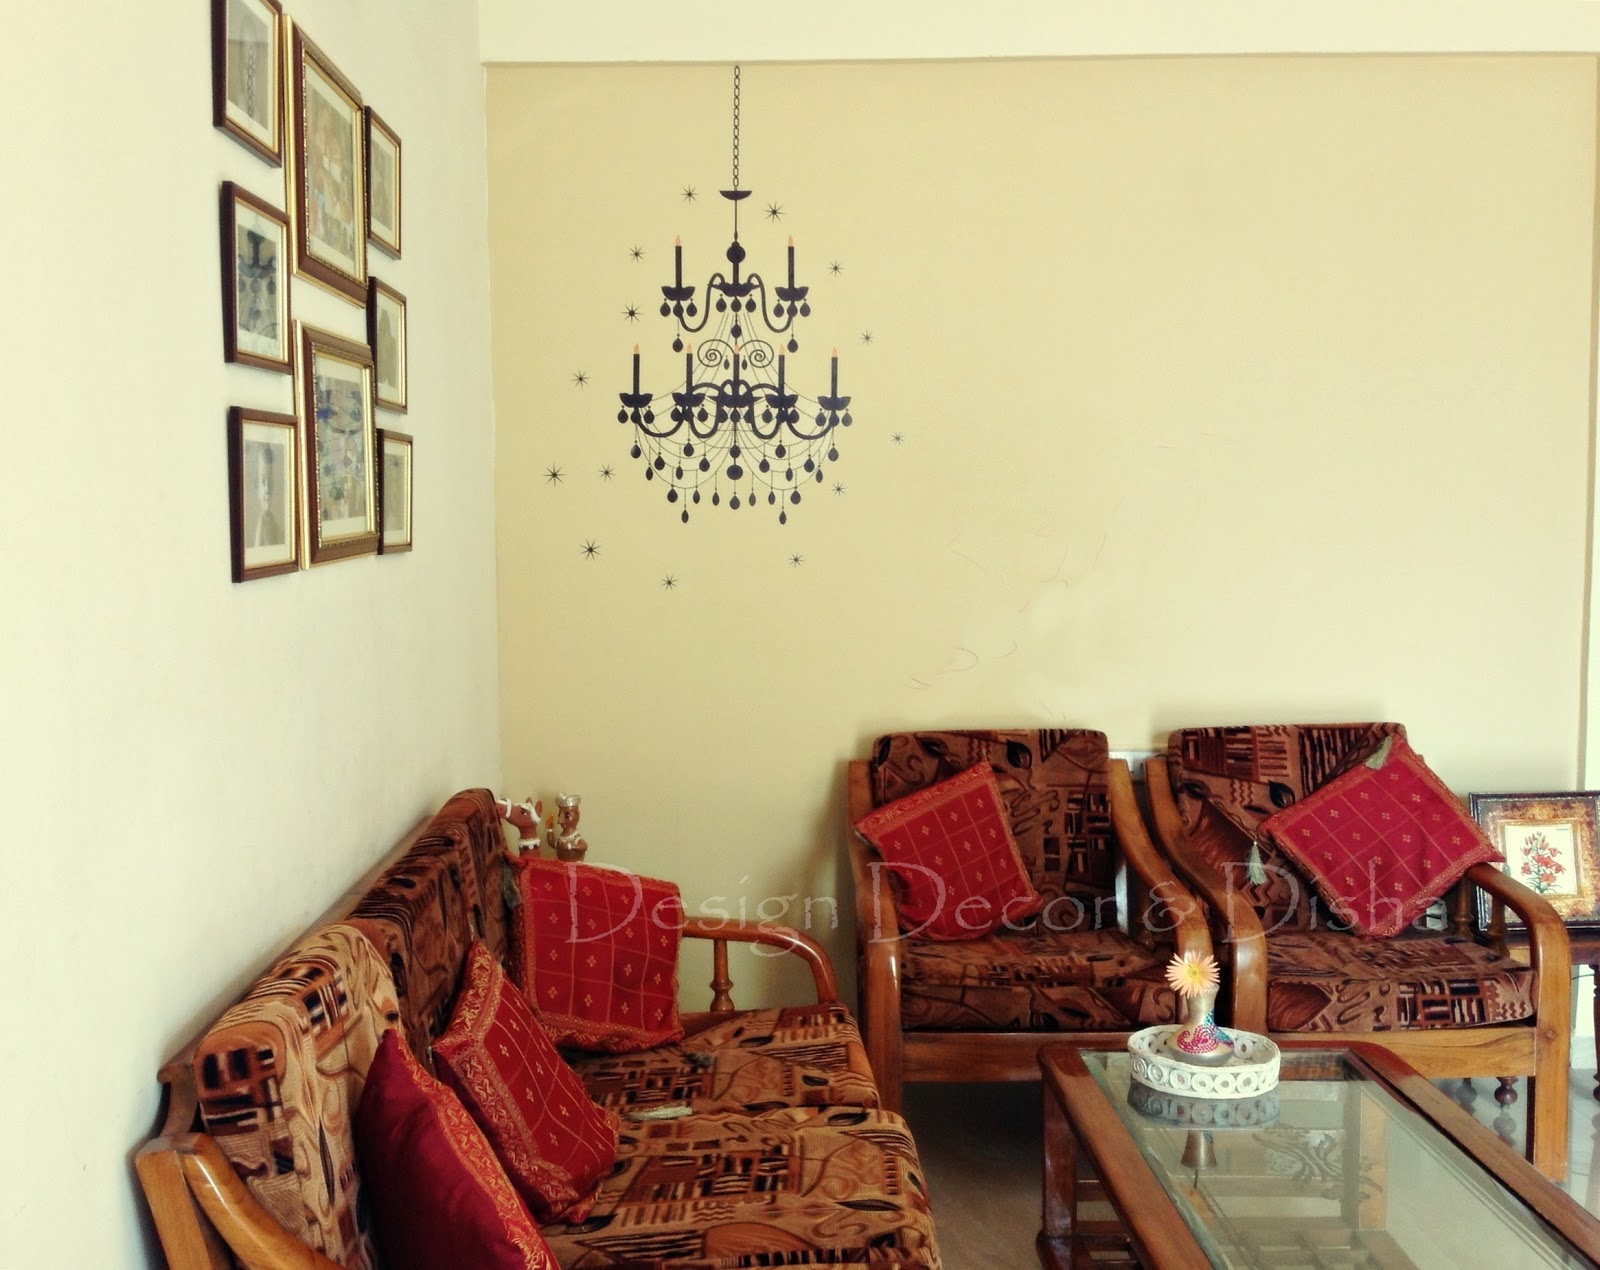 Design Decor & Disha | An Indian Design & Decor Blog: KwikDeko Wall ...